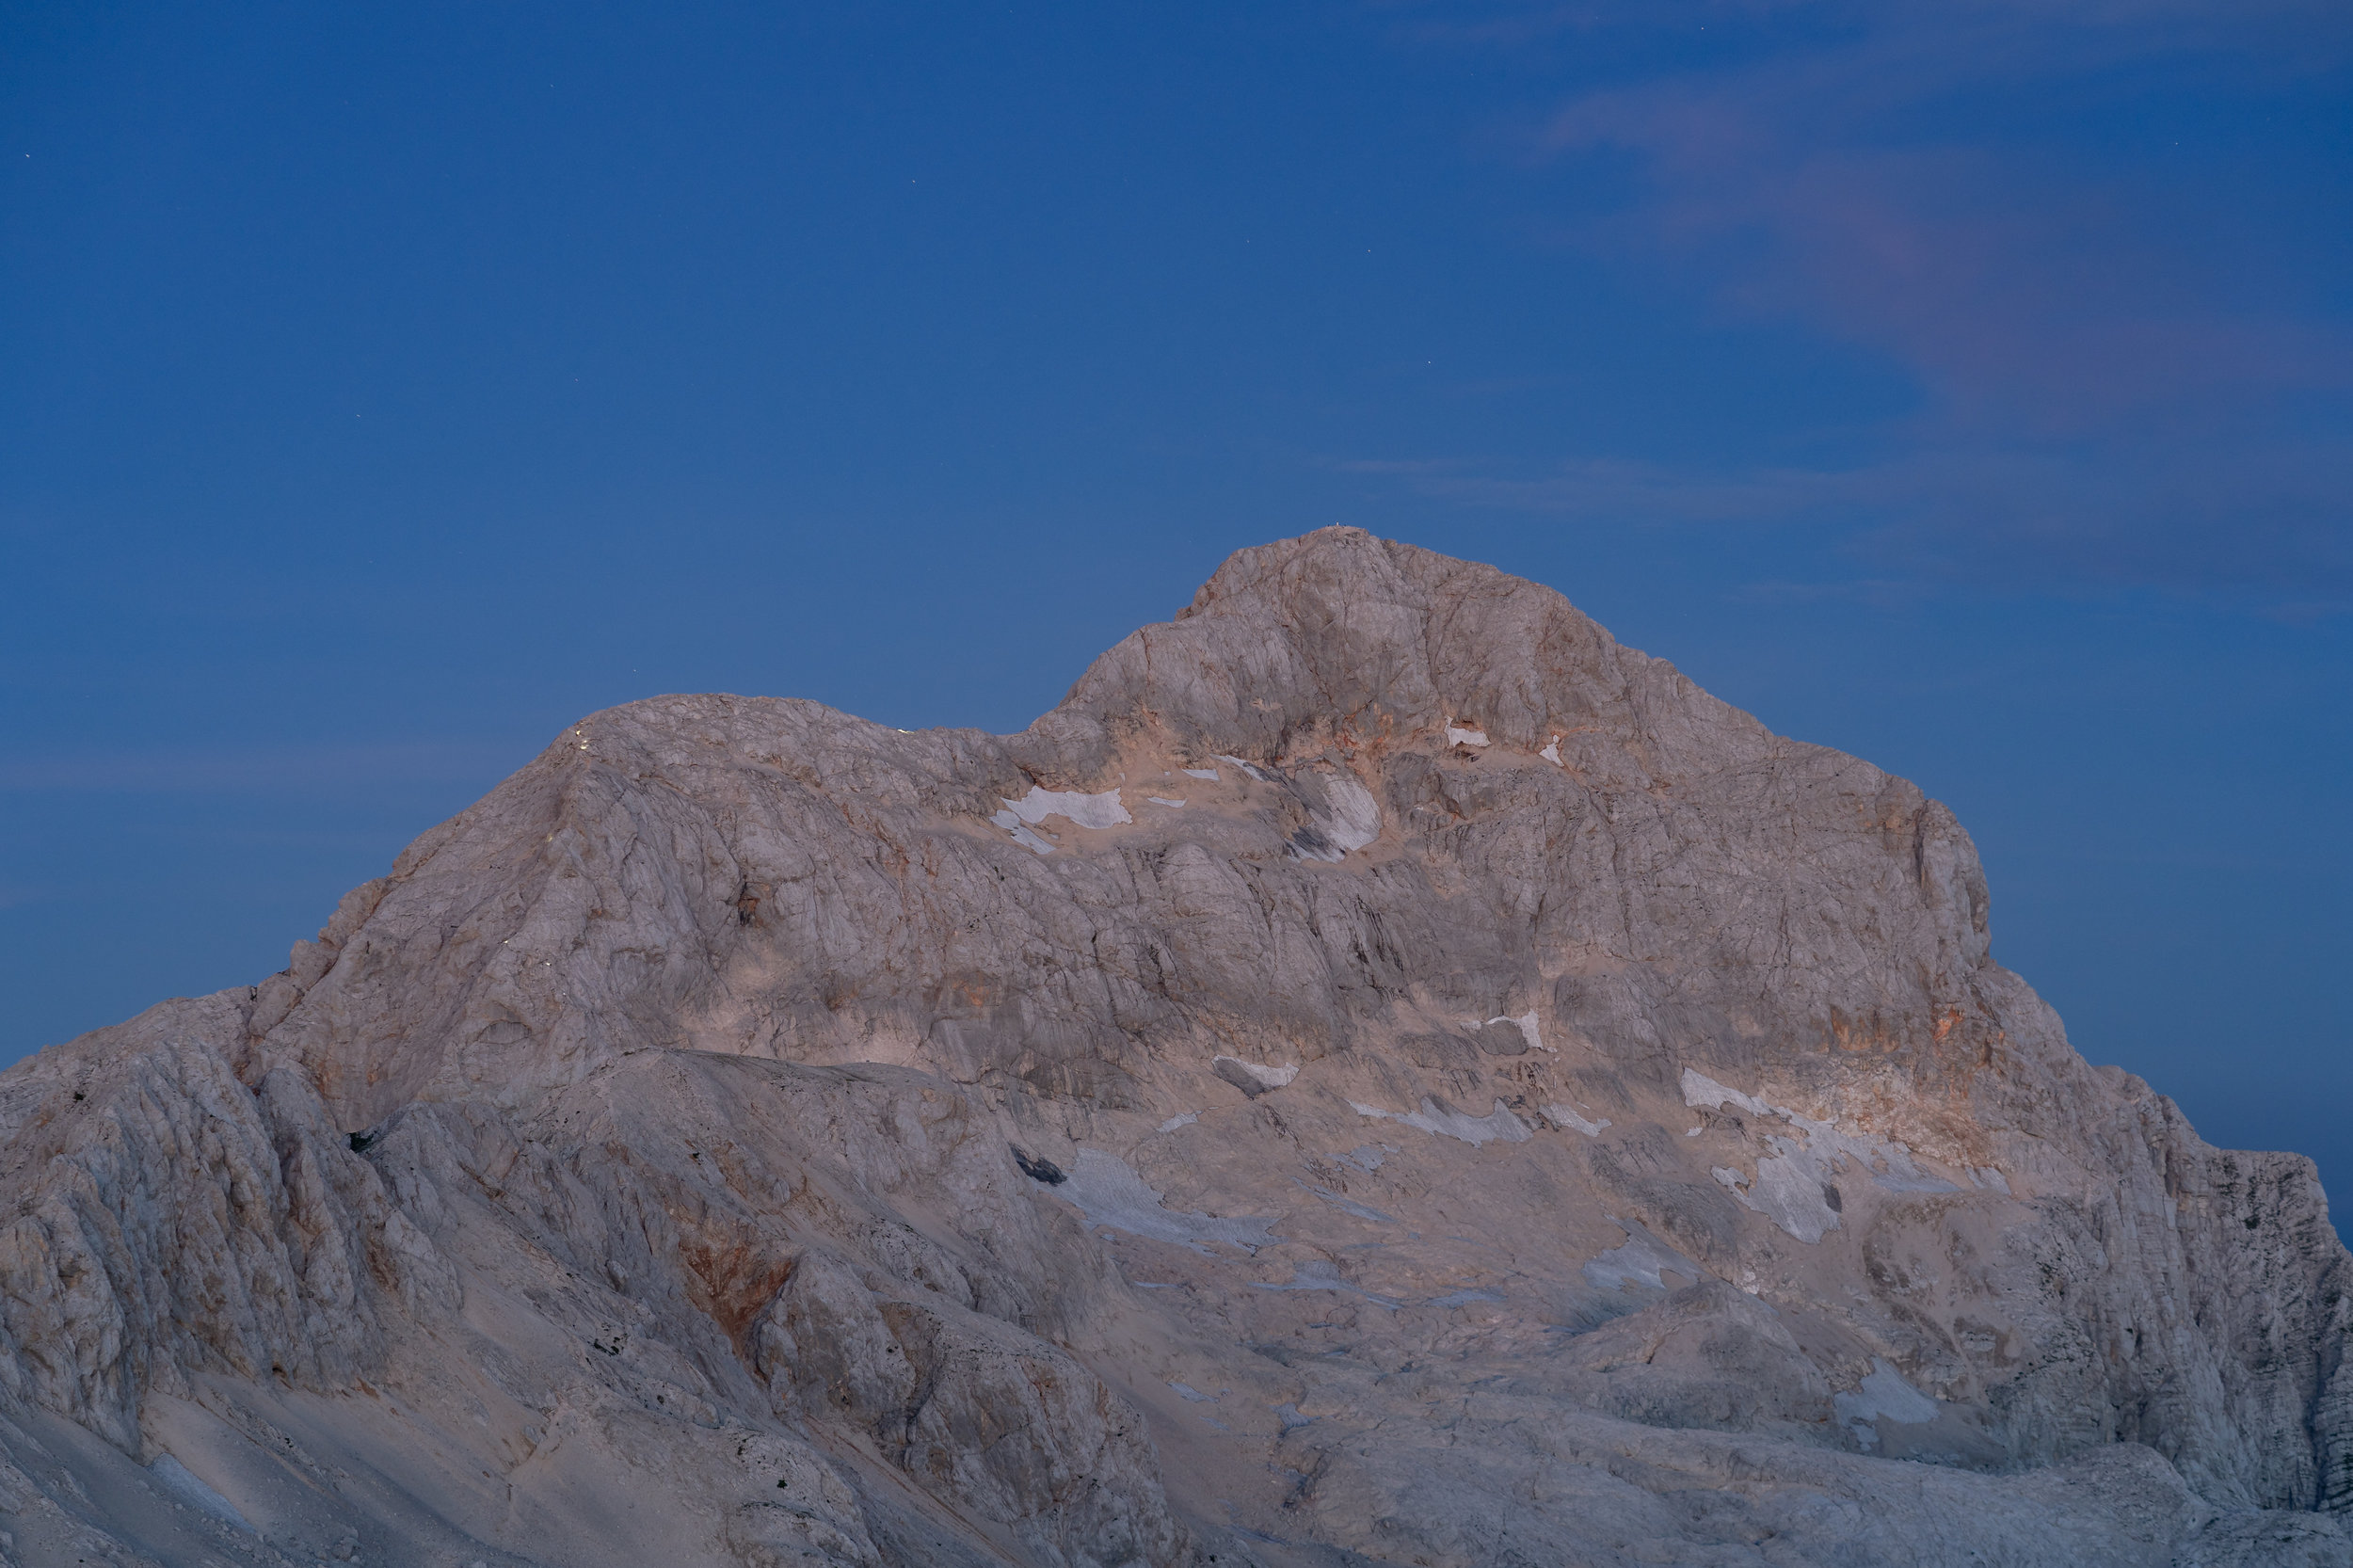 People climbing Mt. Triglav in early morning. Can you see the lights?